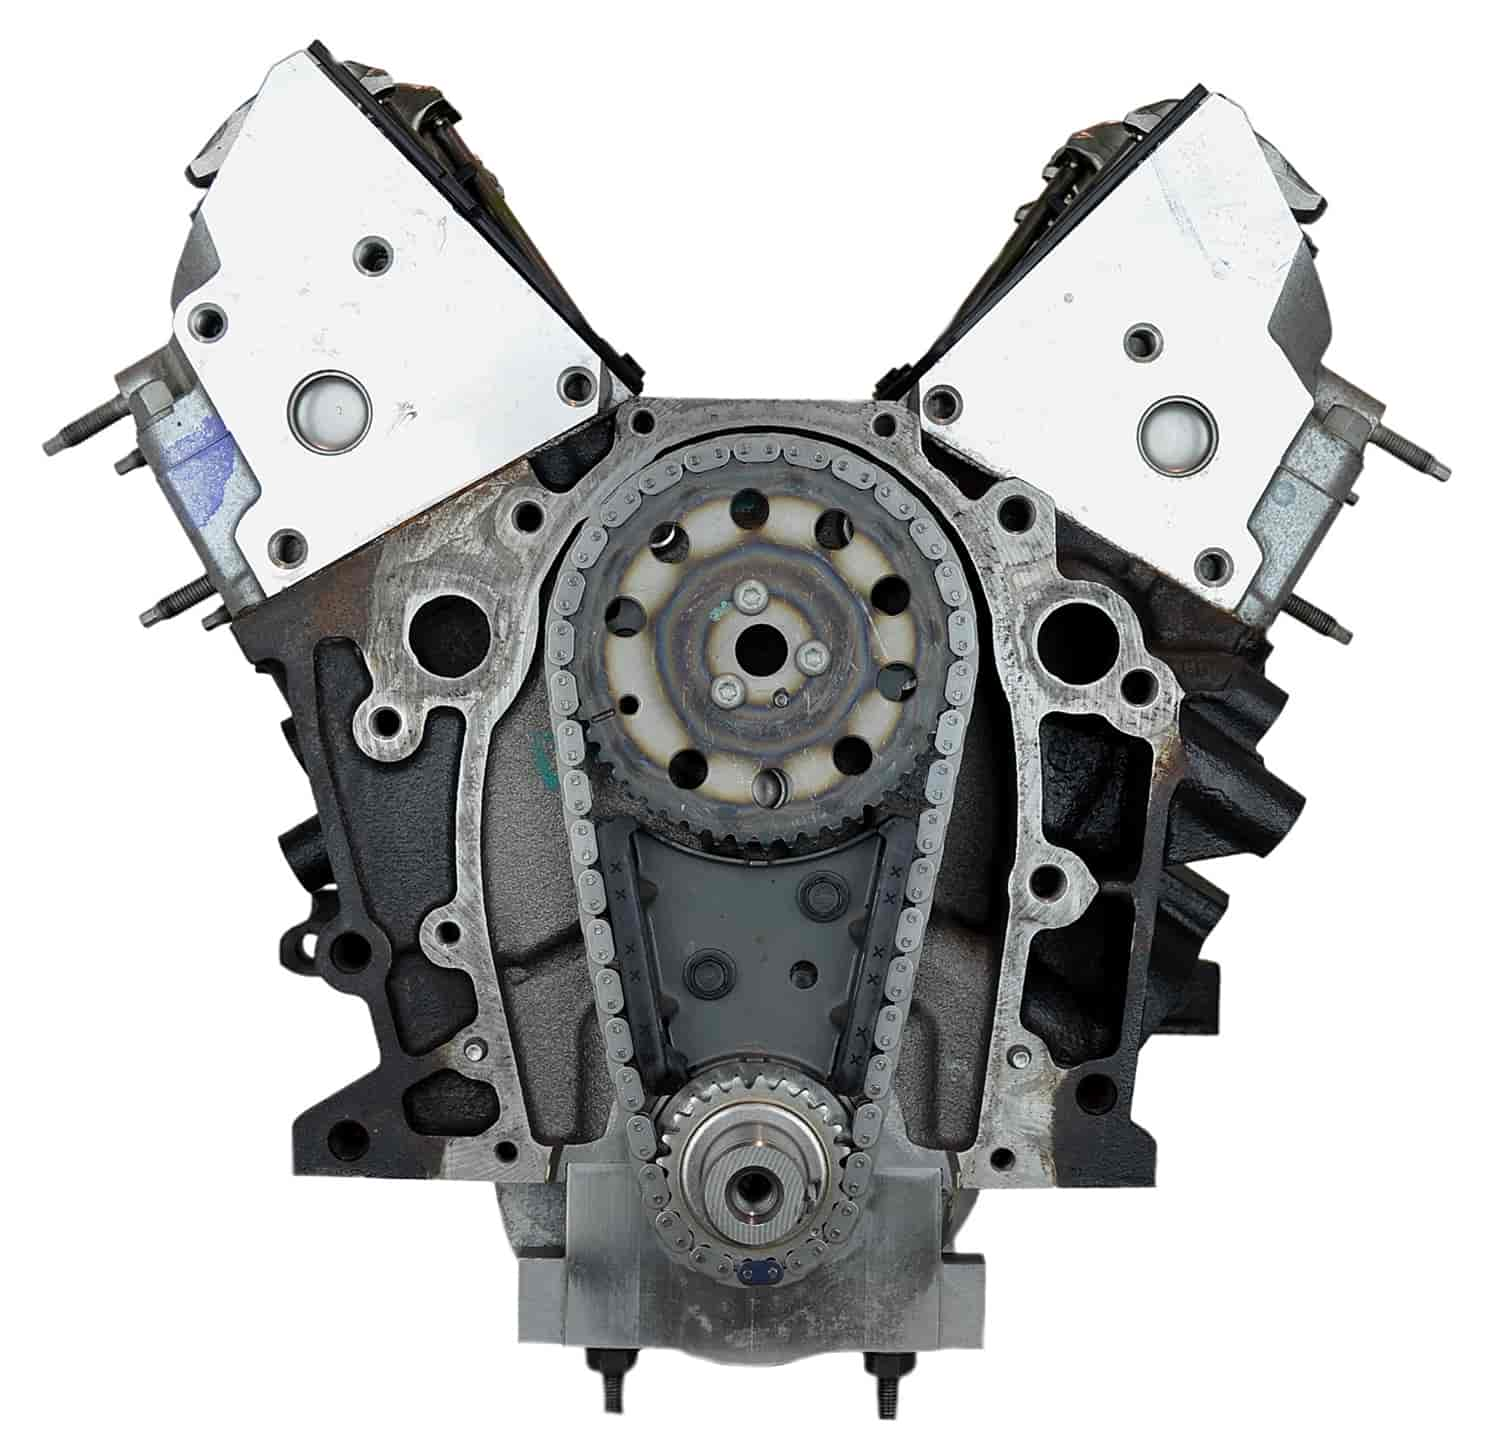 ATK Engines DCWK: Remanufactured Crate Engine for 2007-2009 Chevy Equinox & Pontiac Torrent with ...